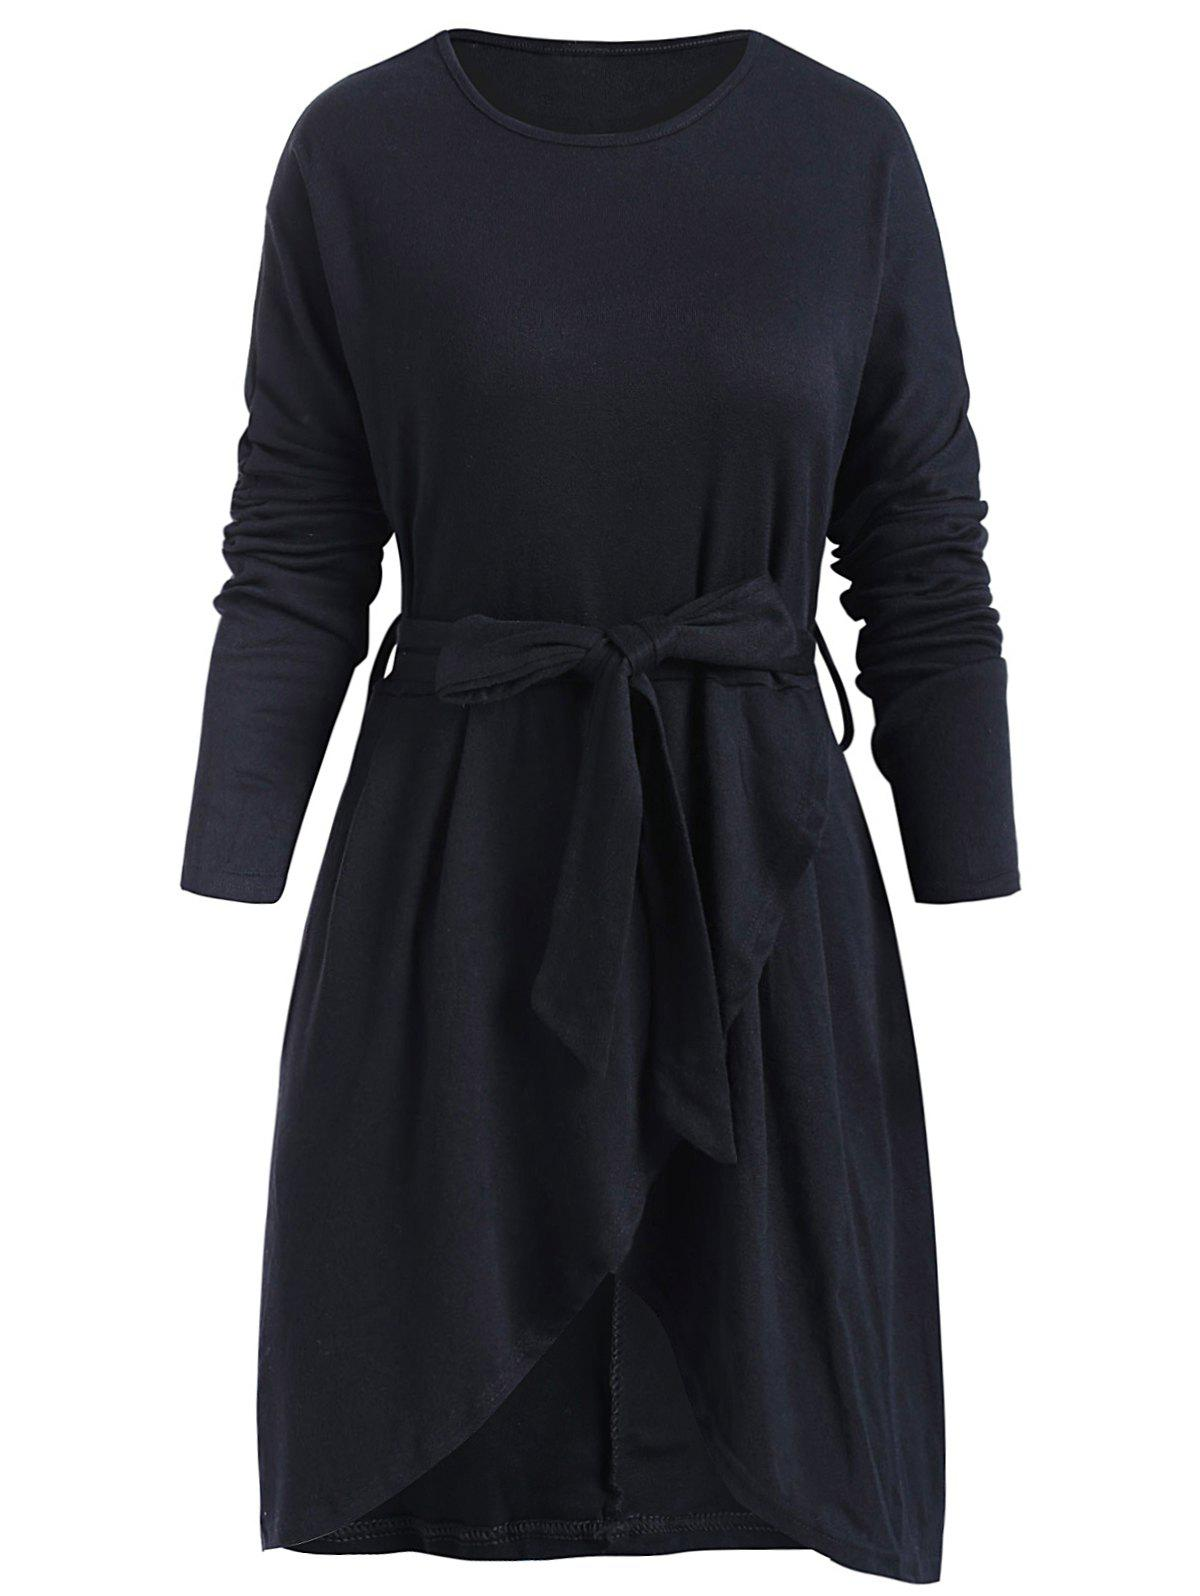 Chic Belted Long Sleeve Tulip Dress